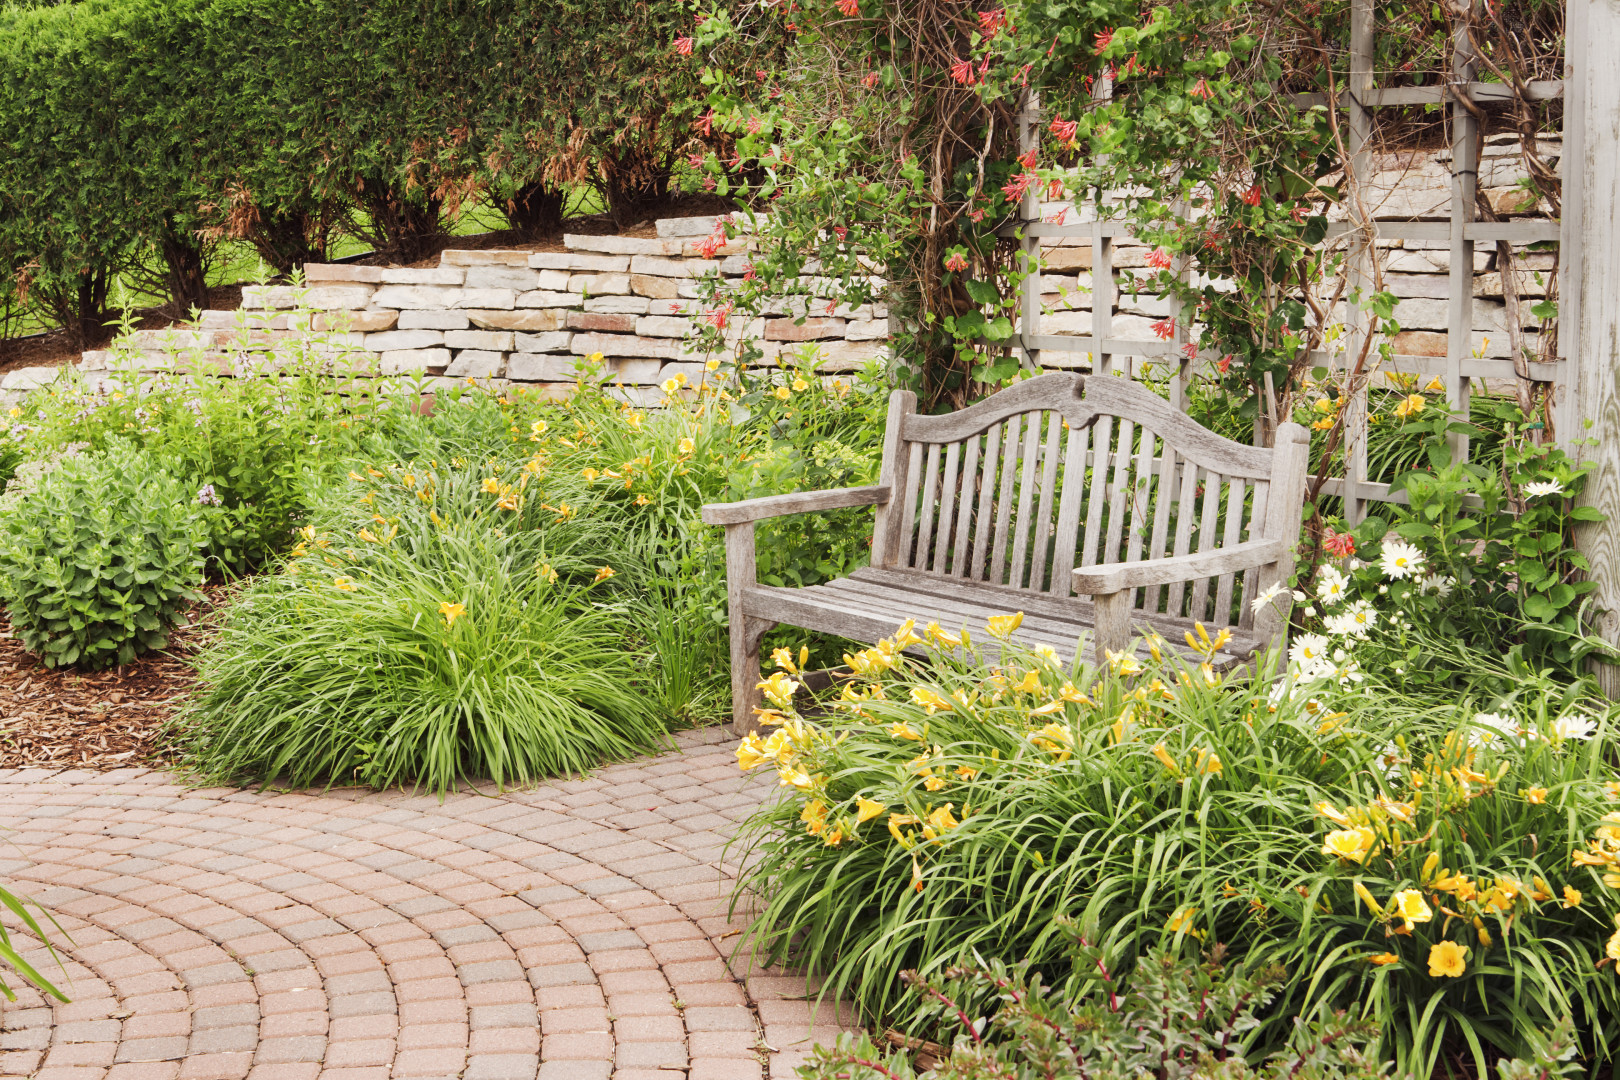 Supple Drought Tolerant Landscaping Drought Tolerant Landscaping Pacific Residential Mortgage Drought Tolerant Landscape Design Drought Tolerant Landscape Plants houzz-02 Drought Tolerant Landscape